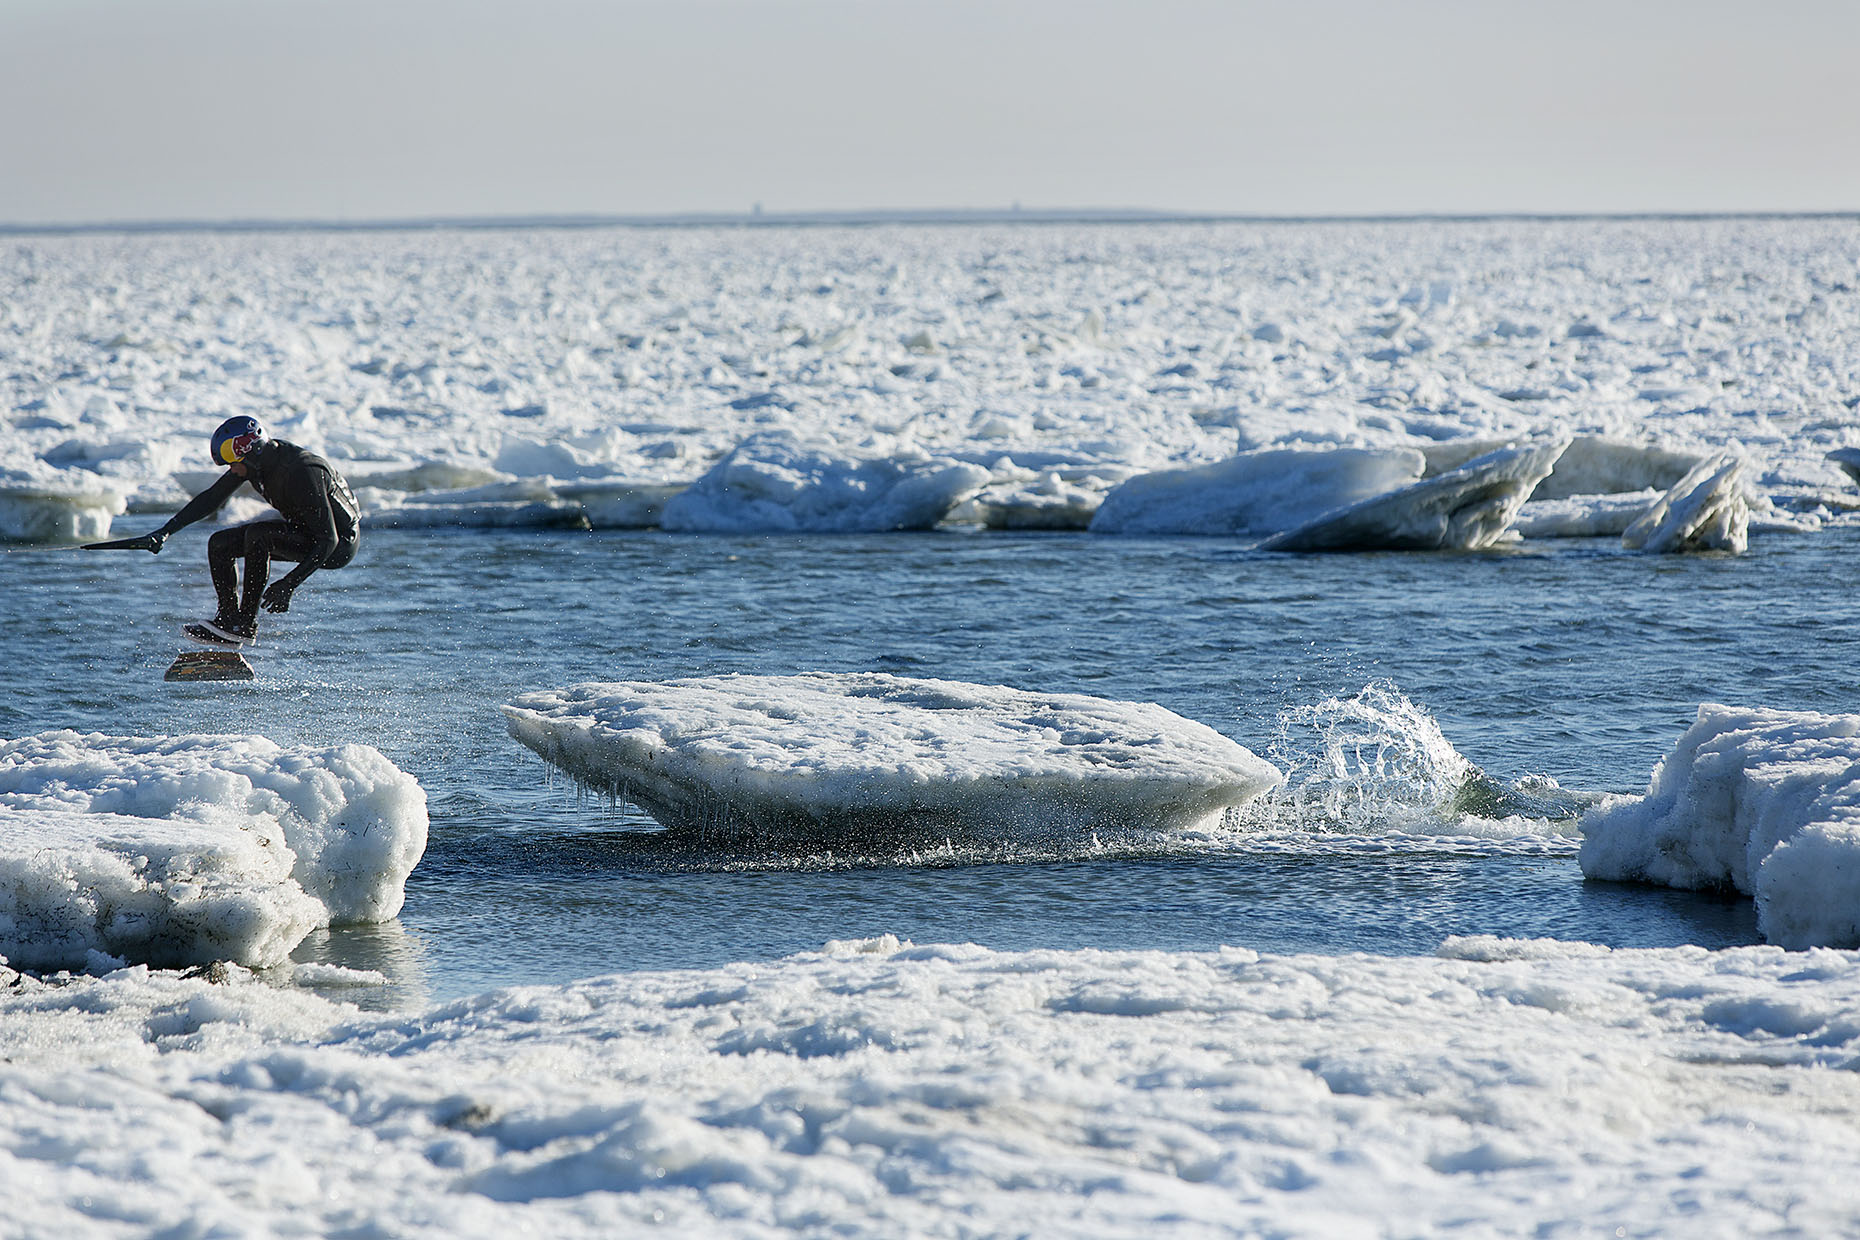 Wakeboarding icebergs in Cape Cod for Red Bull by Boston based commercial sports photographer Brian Nevins